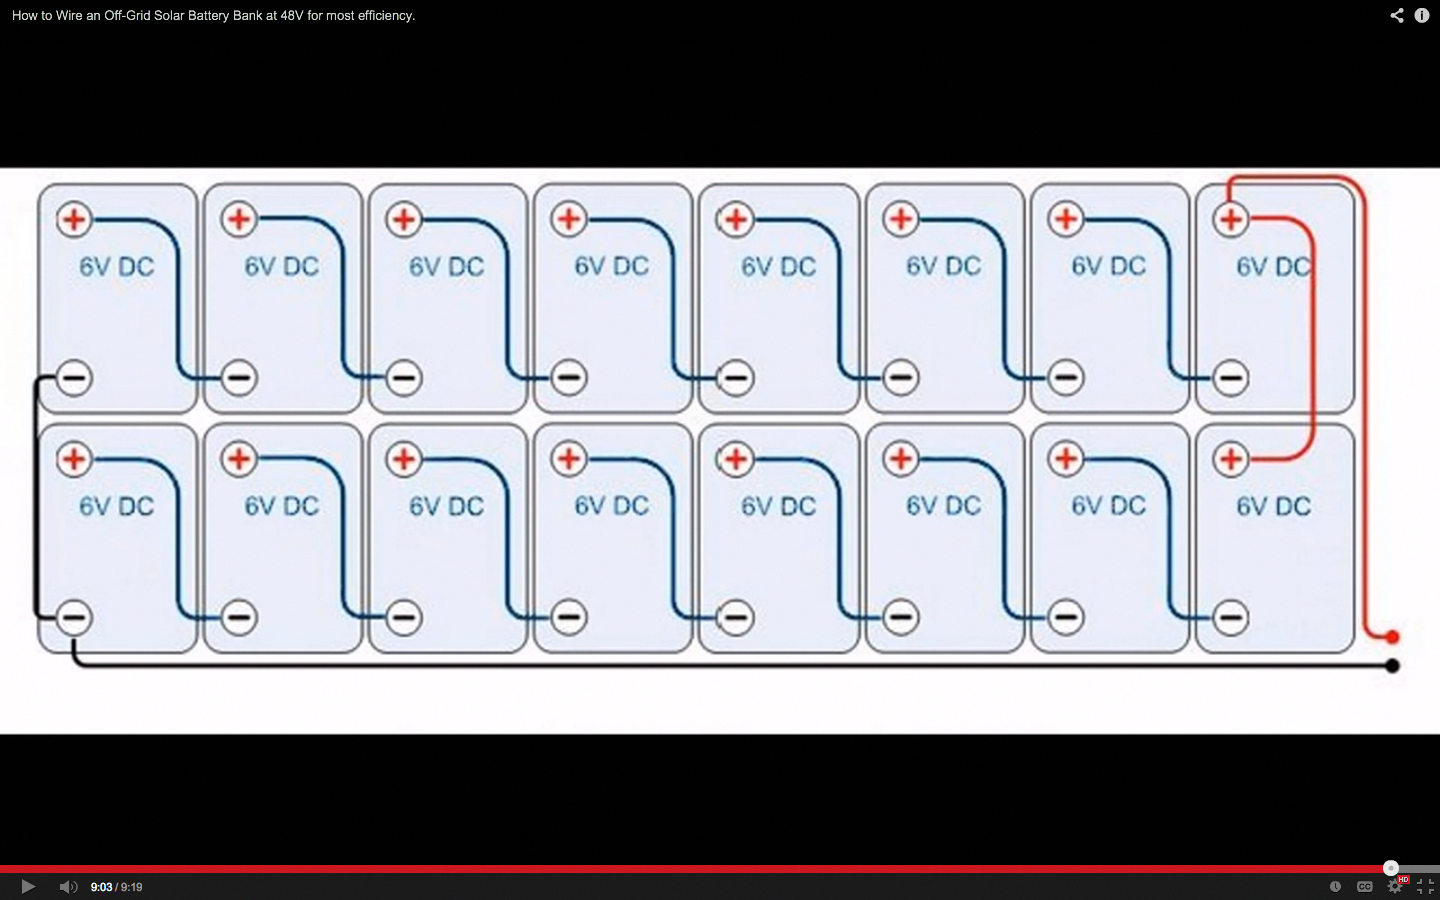 medium resolution of simple battery bank wiring diagram for 48volts dc based on 6v batteries